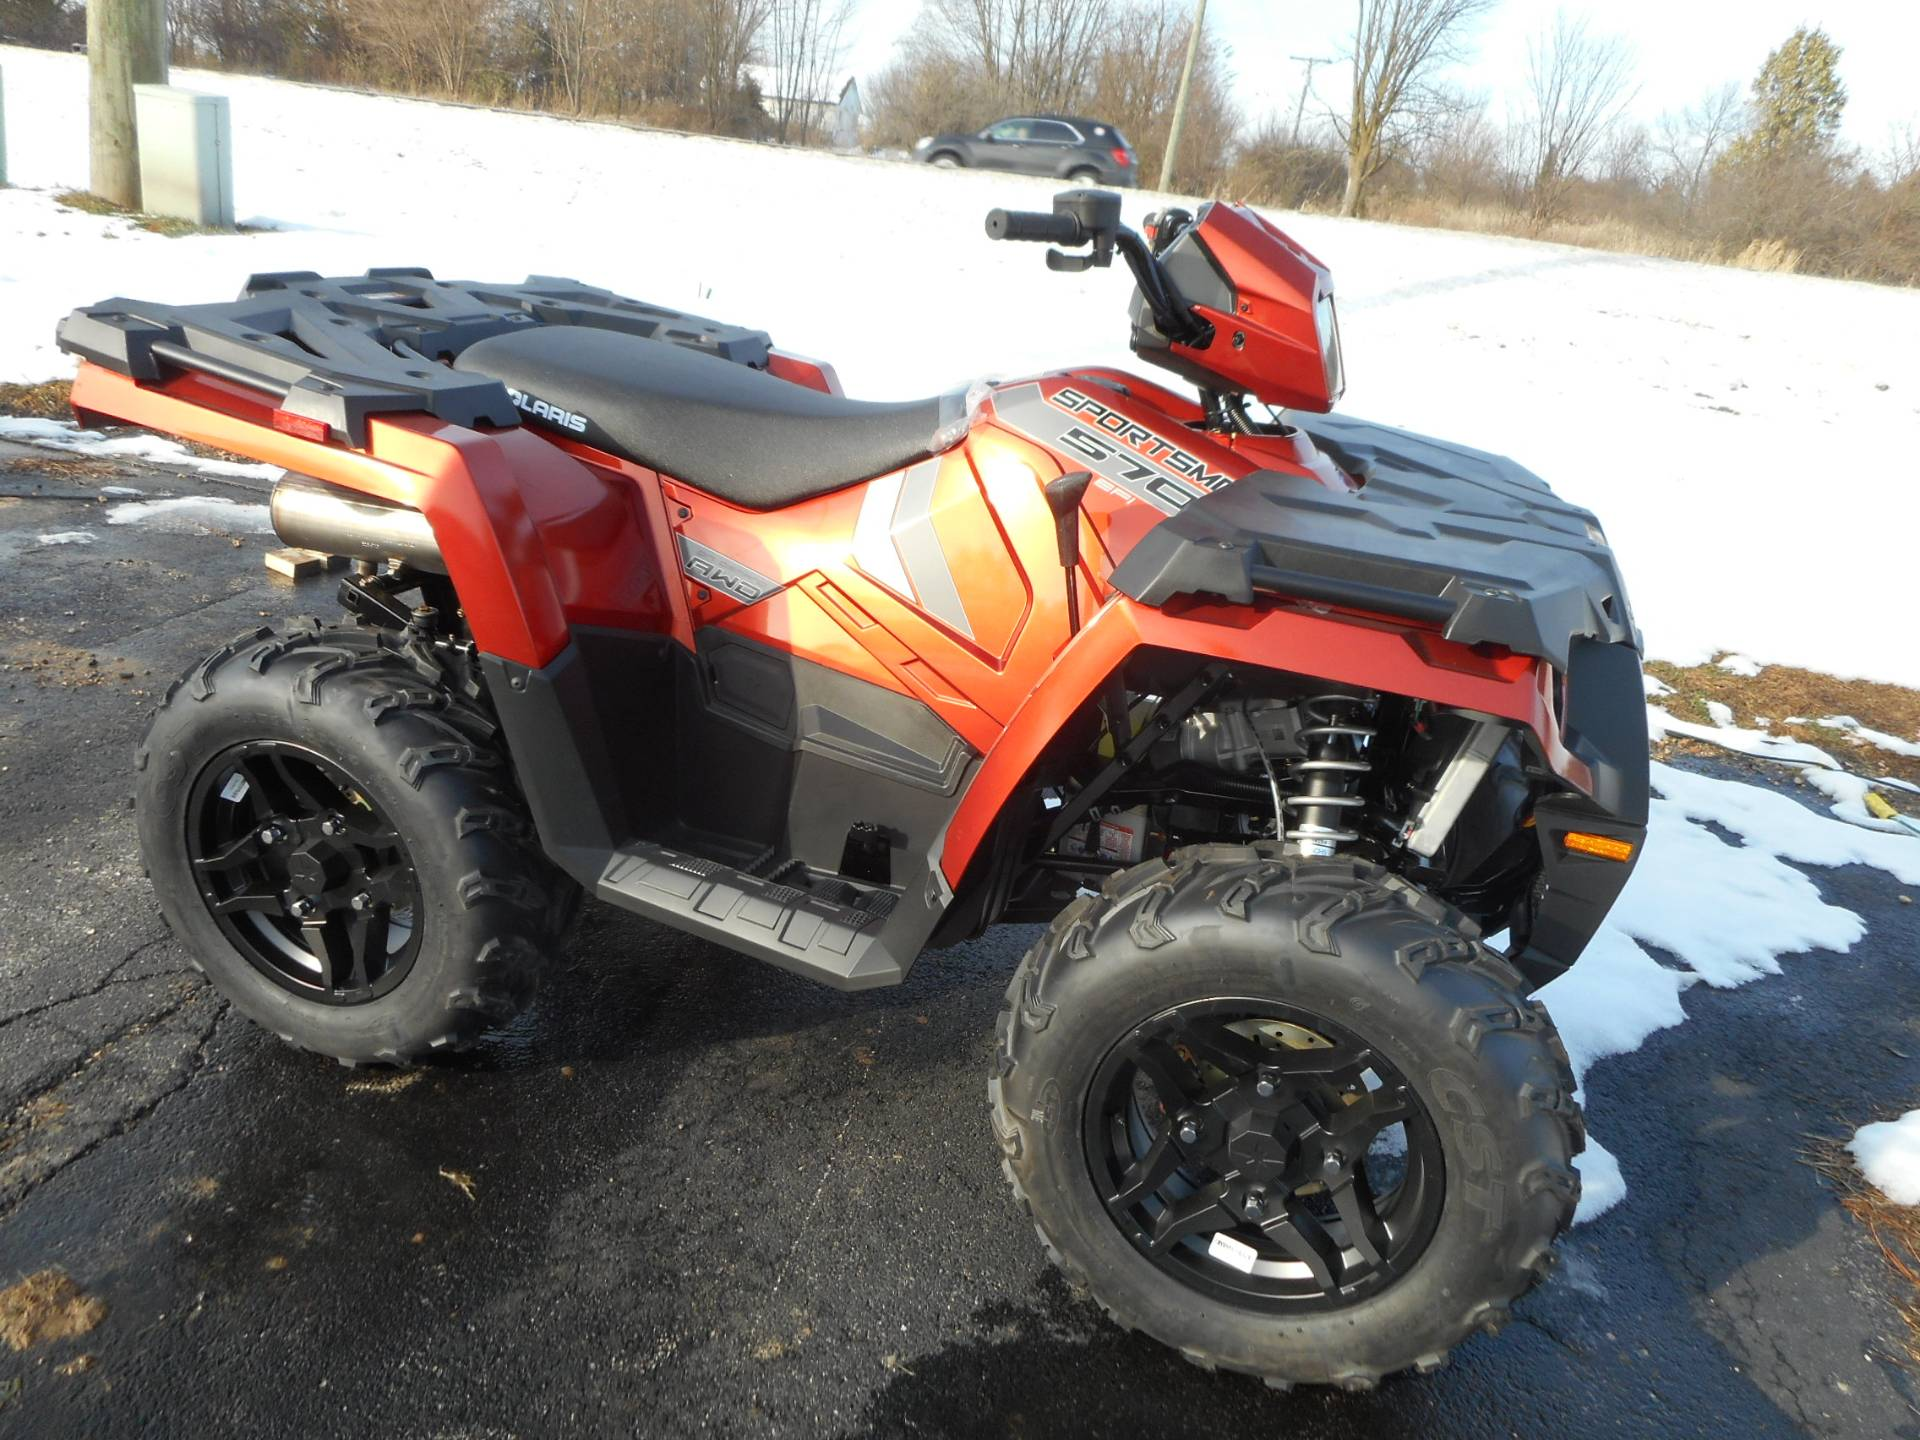 2020 Polaris Sportsman 570 Premium in Belvidere, Illinois - Photo 1